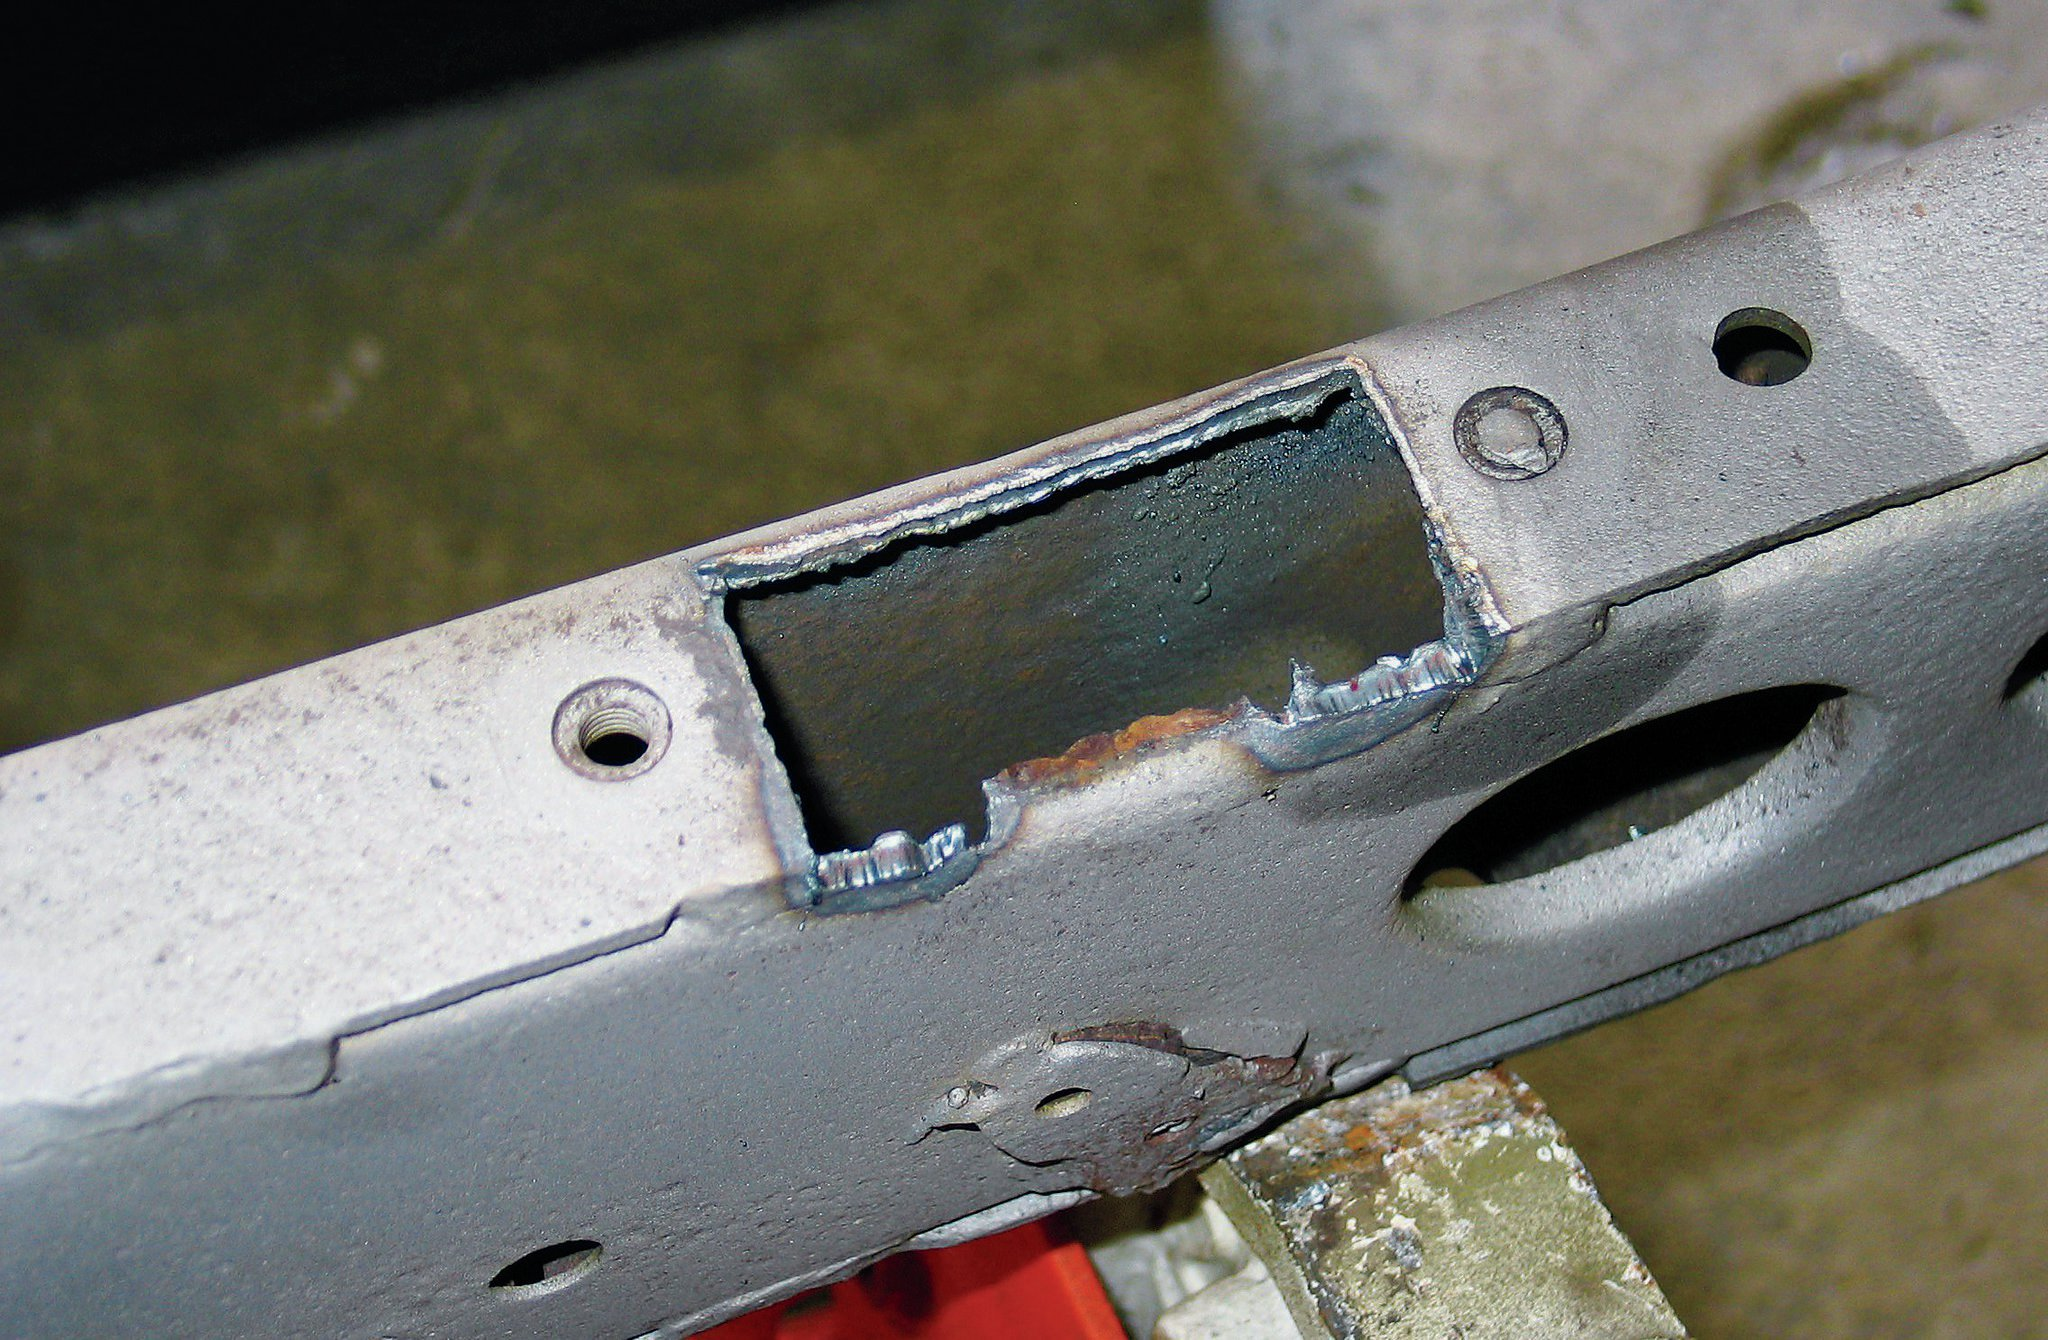 We used our Miller Spectrum 375 X-treme plasma cutter to remove the rust hole. Make sure you get into the non-rusted thicker material where you can throw down a solid weld. Once the cancer hole is cut out, you can clean it up with a grinder. Measure for a replacement piece that fits tightly.